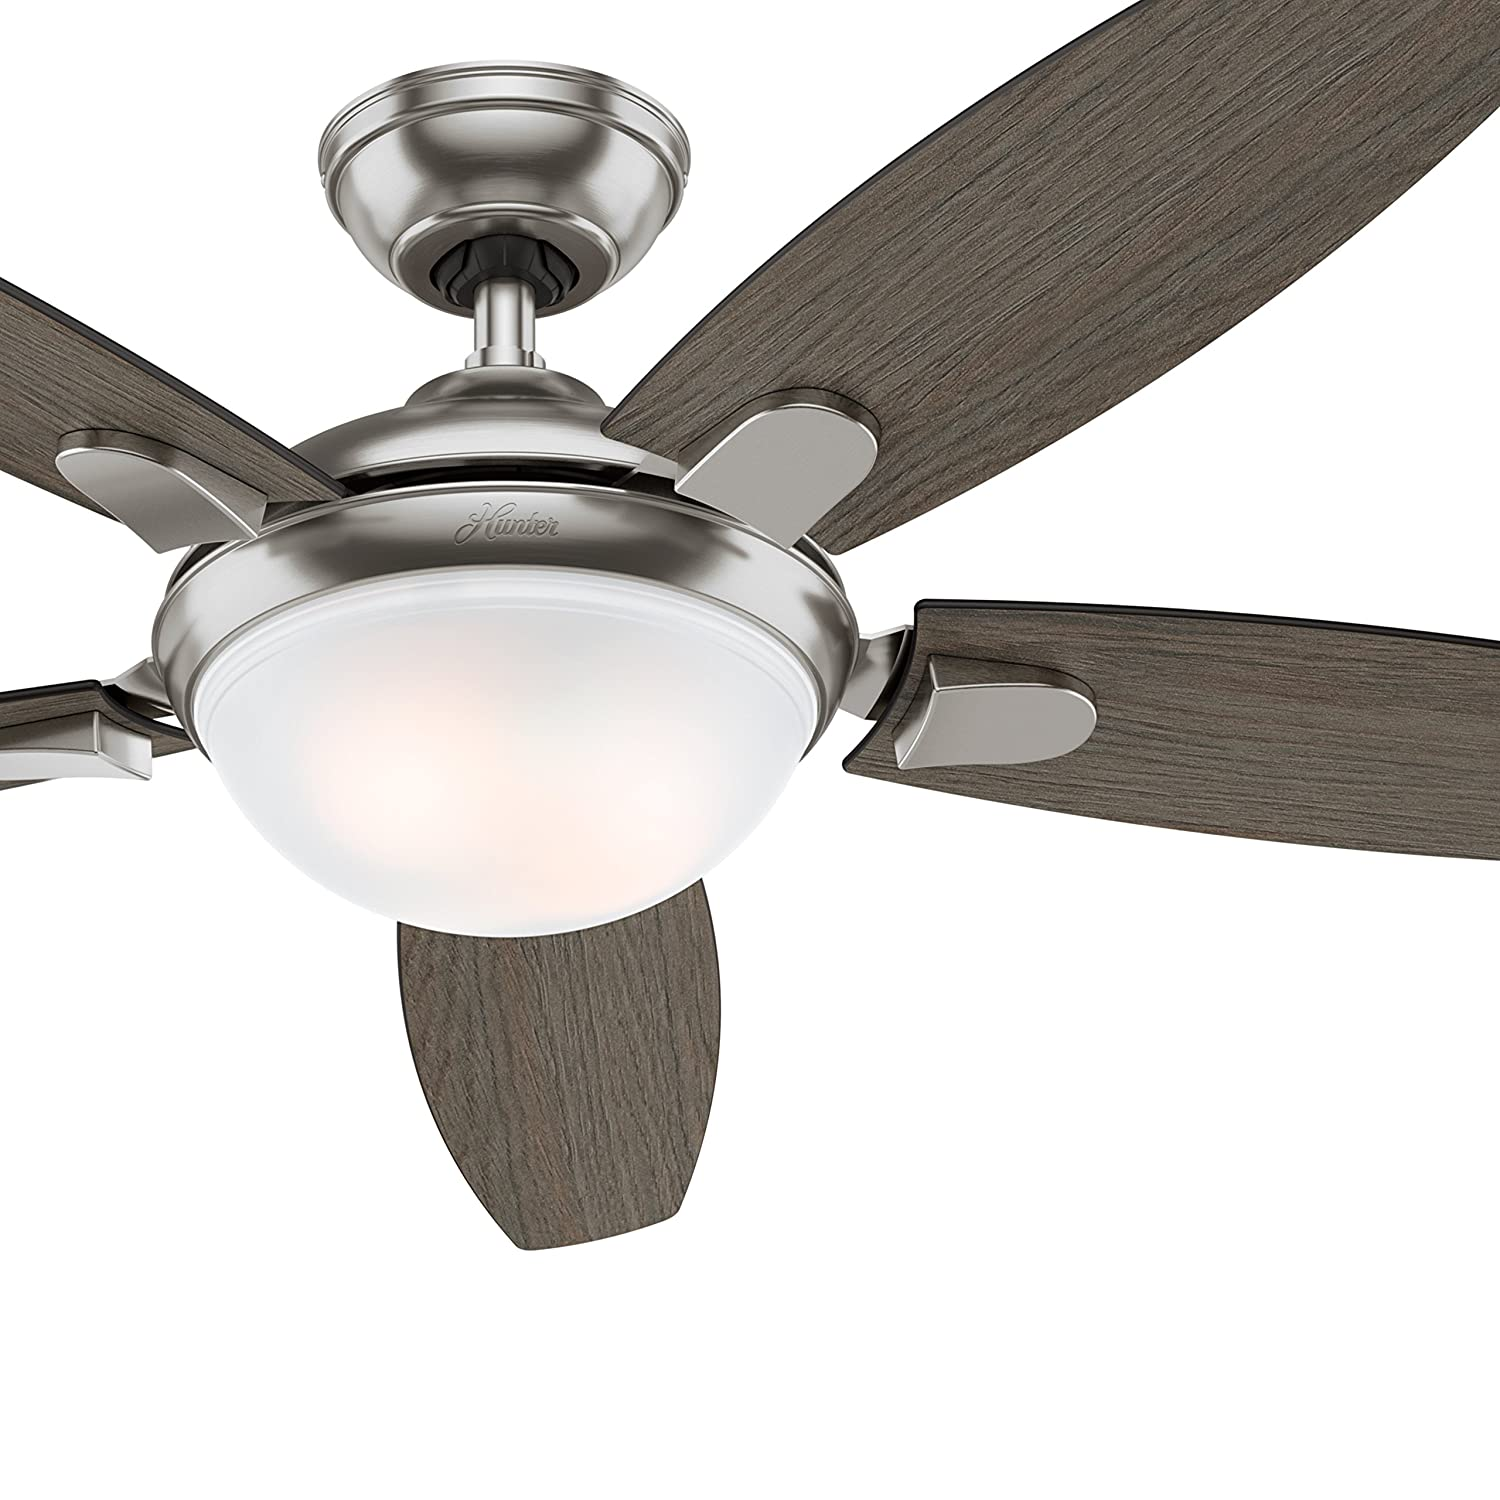 Hunter Fan 54 inch Contemporary Ceiling Fan in Brushed Nickel with LED Light and Remote Renewed Brushed Nickel